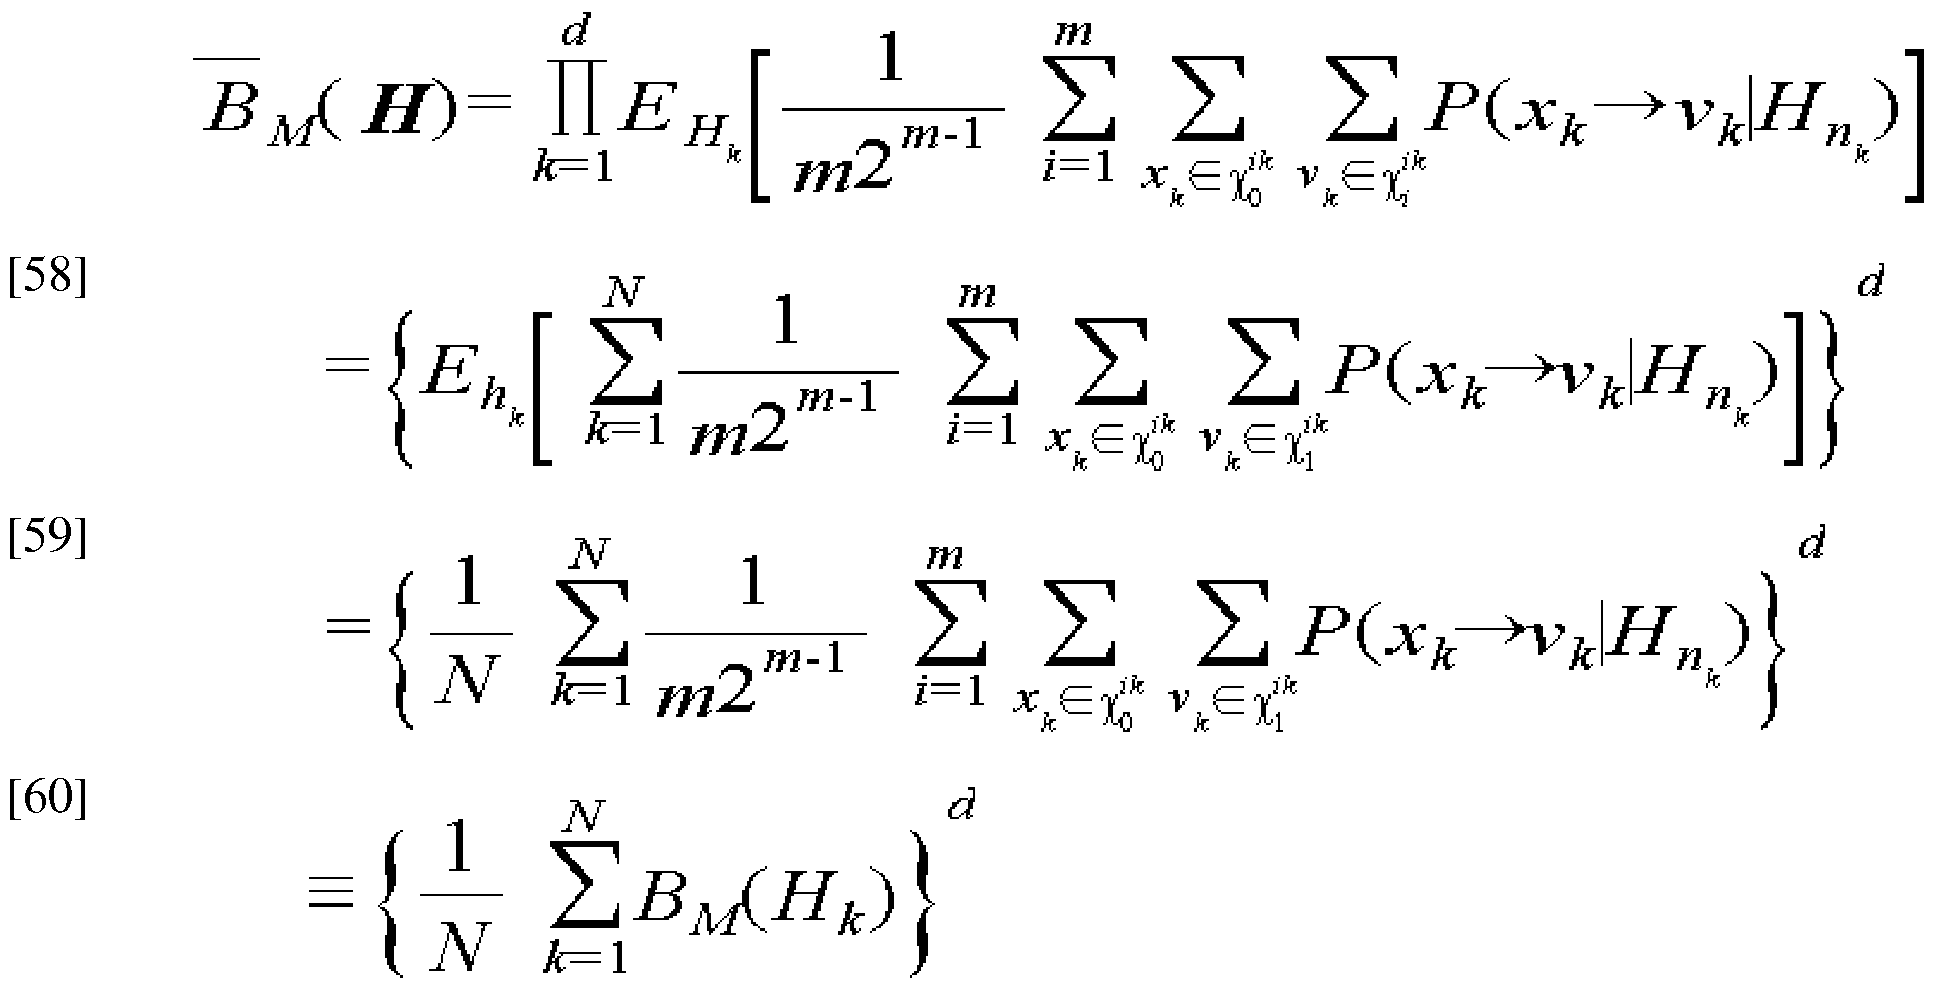 Approximately math symbol gallery symbol and sign ideas wo2008054172a1 method for determining modulation and coding figure imgf0000080002 buycottarizona biocorpaavc